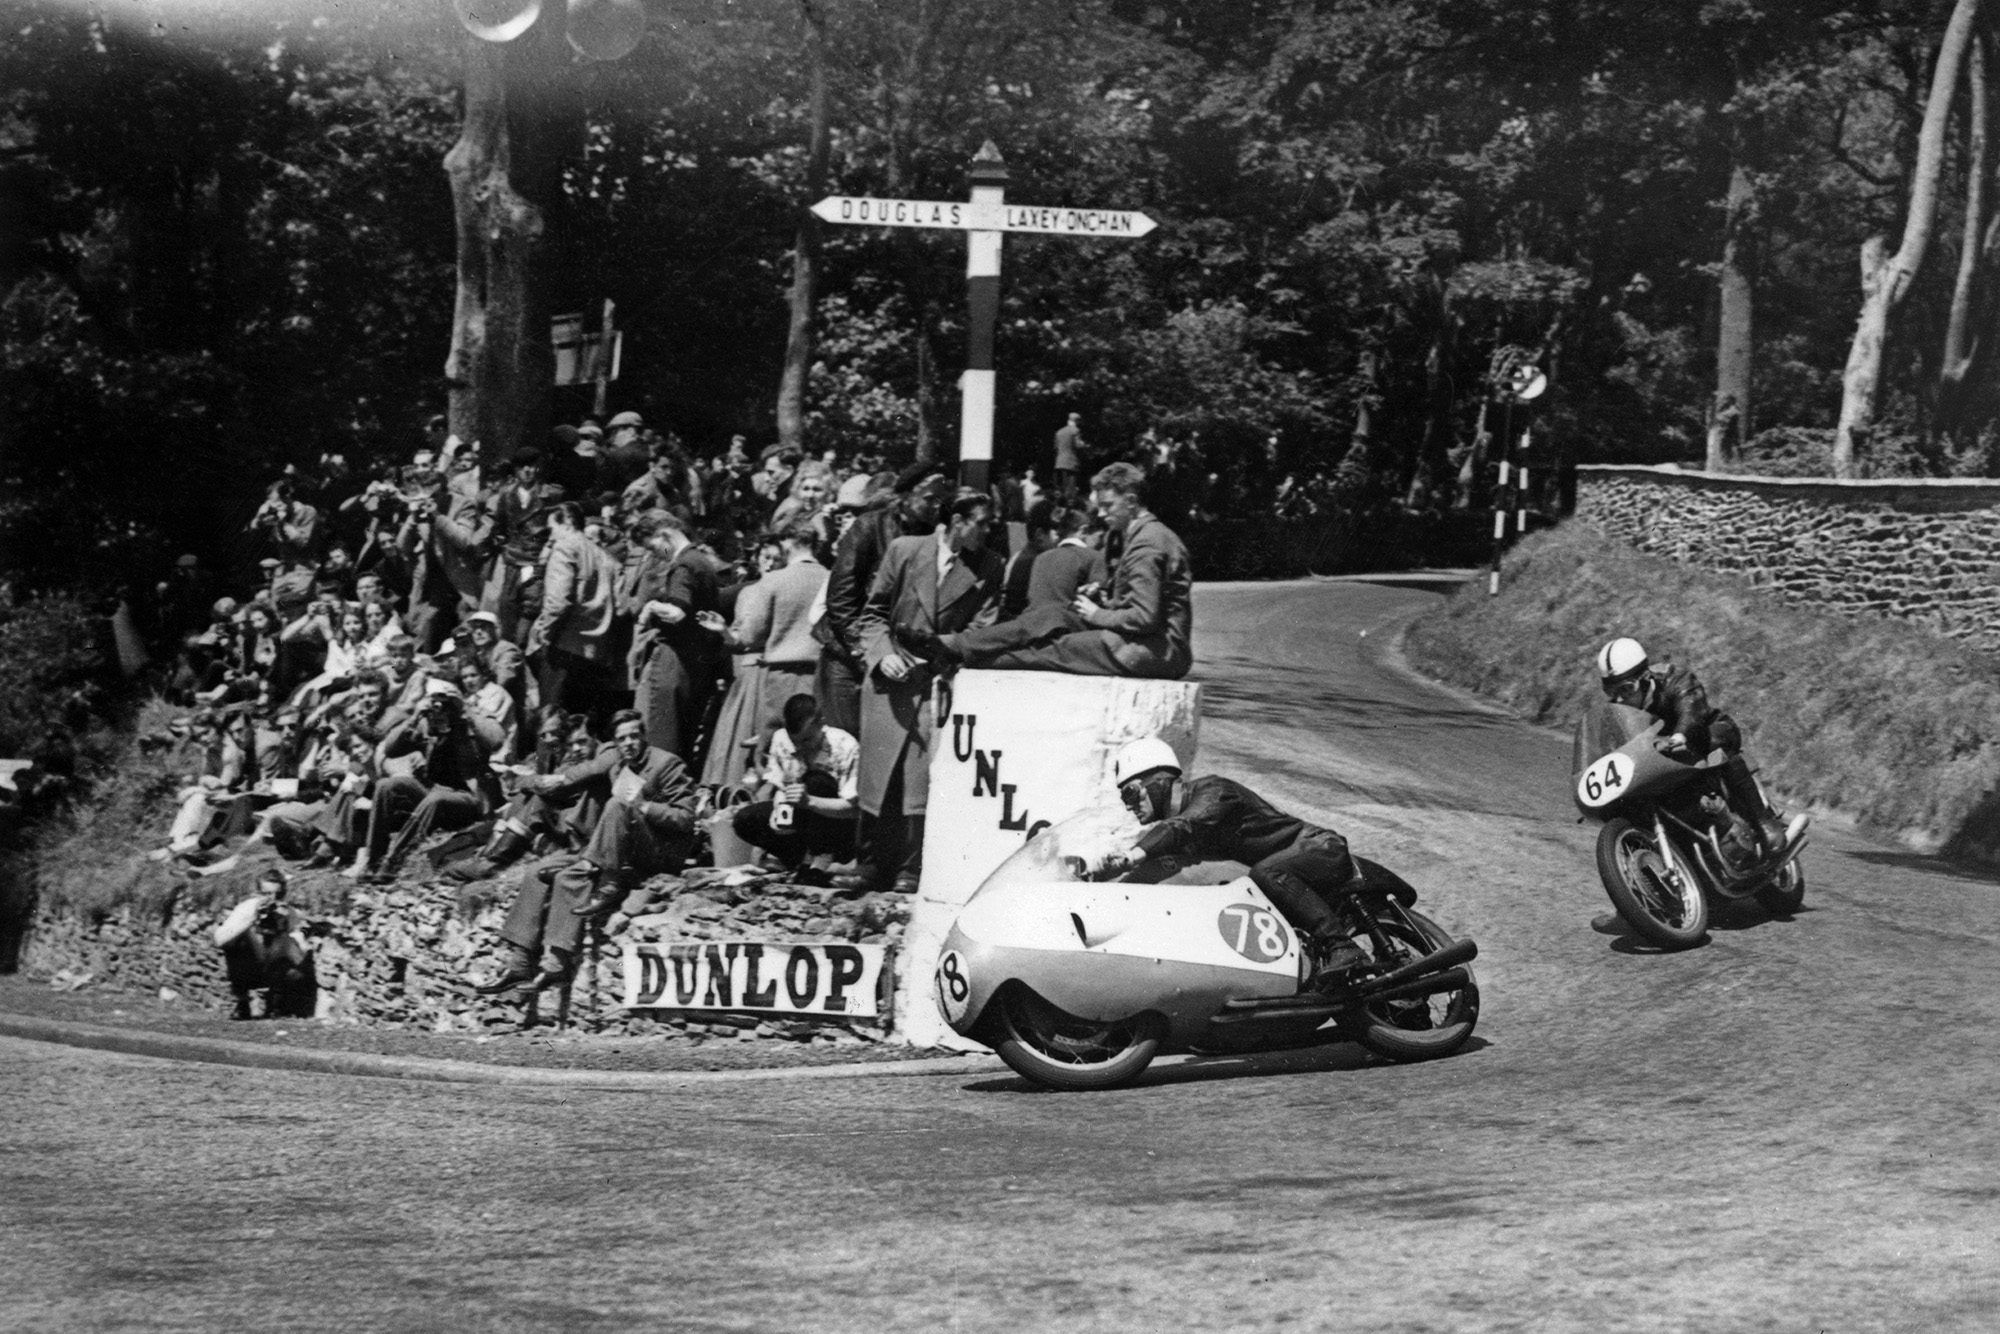 Bob McIntyre rounds the Governor's Bridge hairpin in the 1957 Isle of Man Senior TT